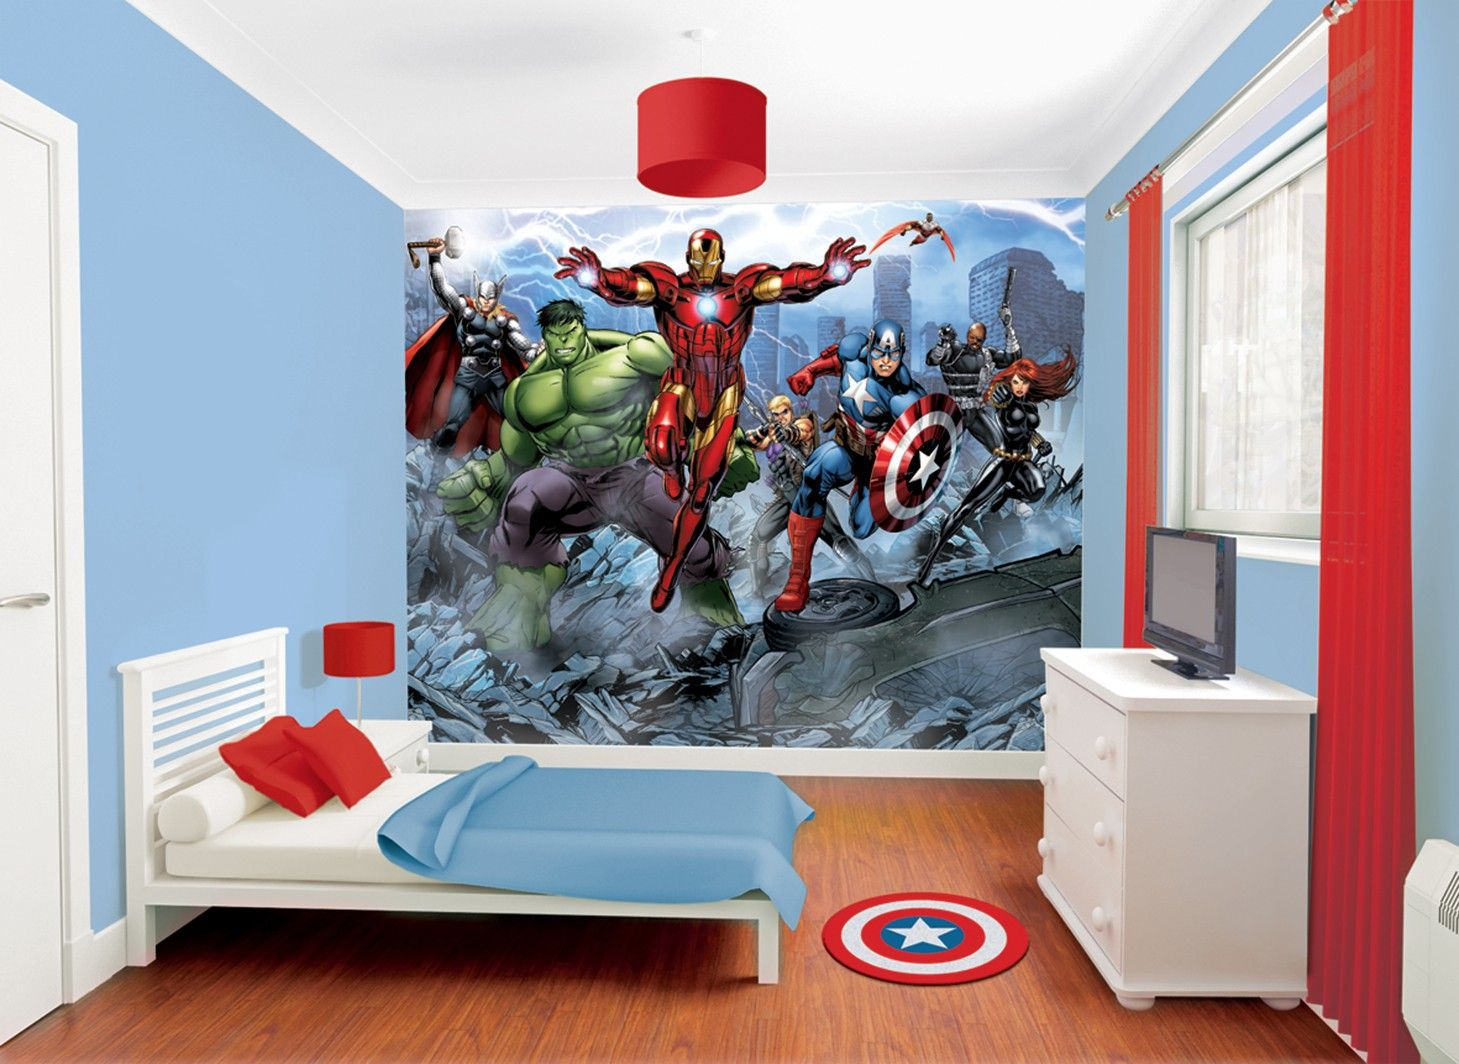 Marvel Themed Room Cool Marvel Avengers Wallpaper Murals.the Boys Need This For Their Design Decoration